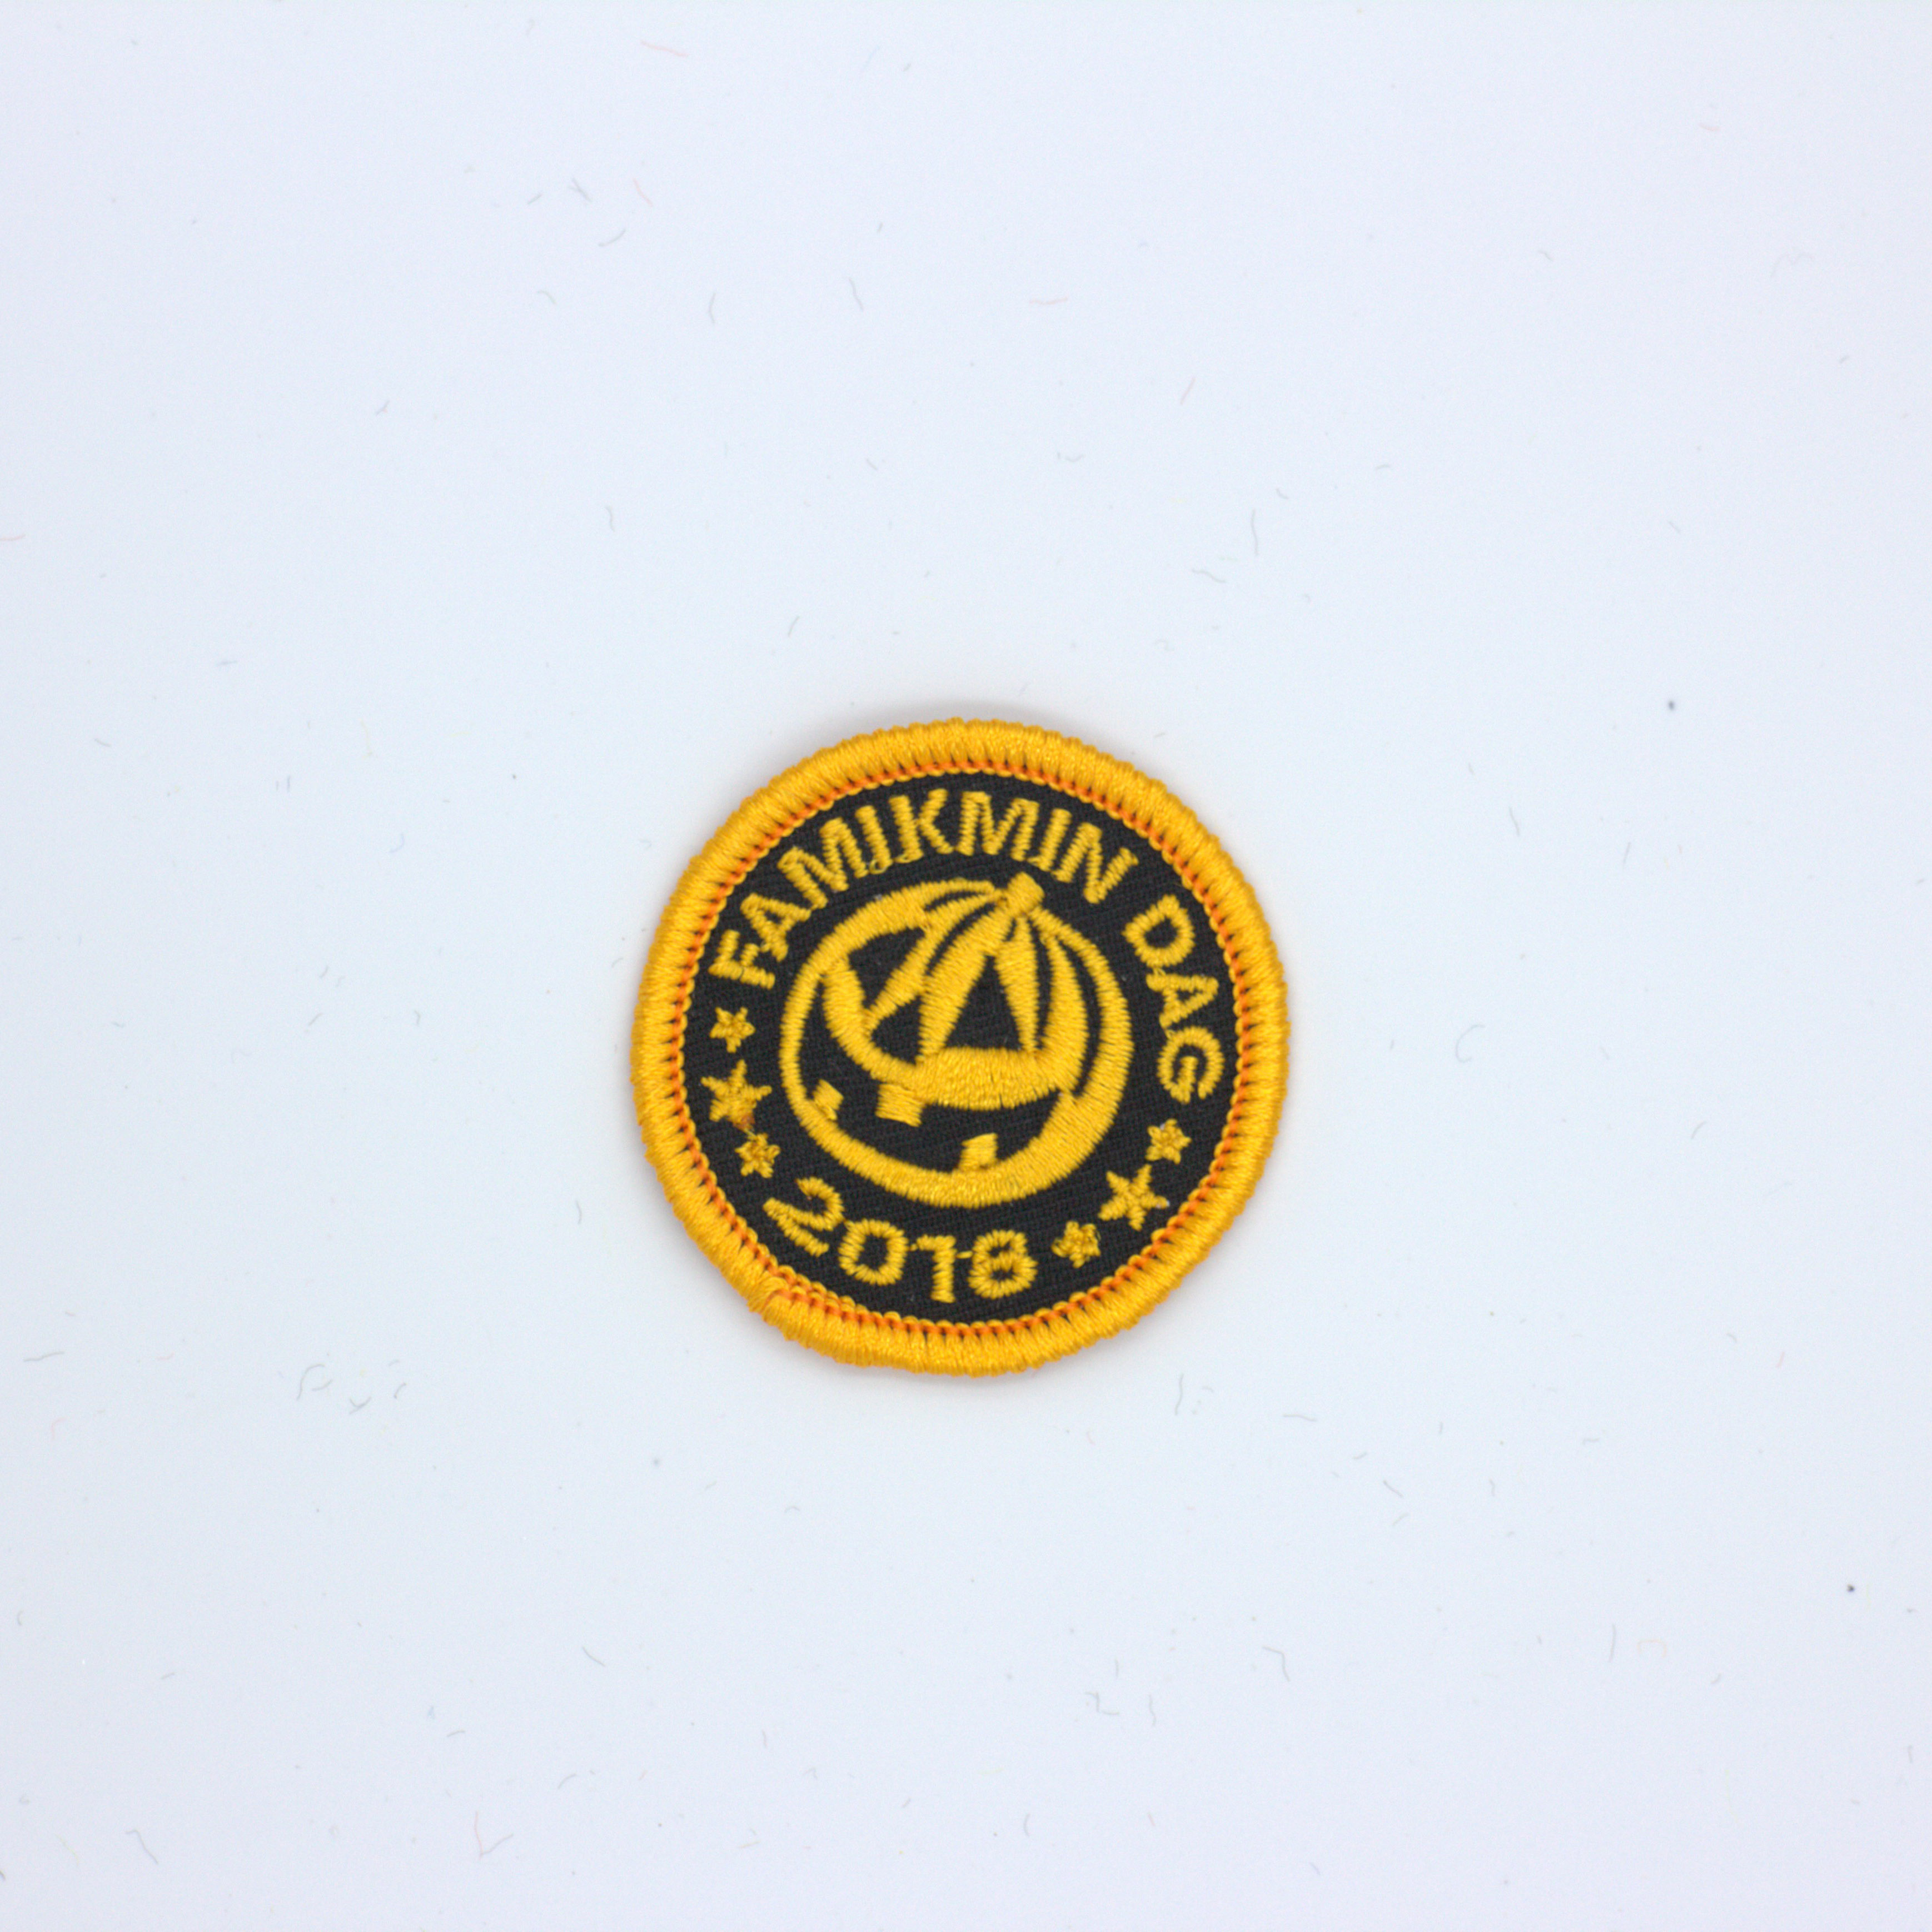 Aegismic custom embroidery chapter patch in Patches from Home Garden